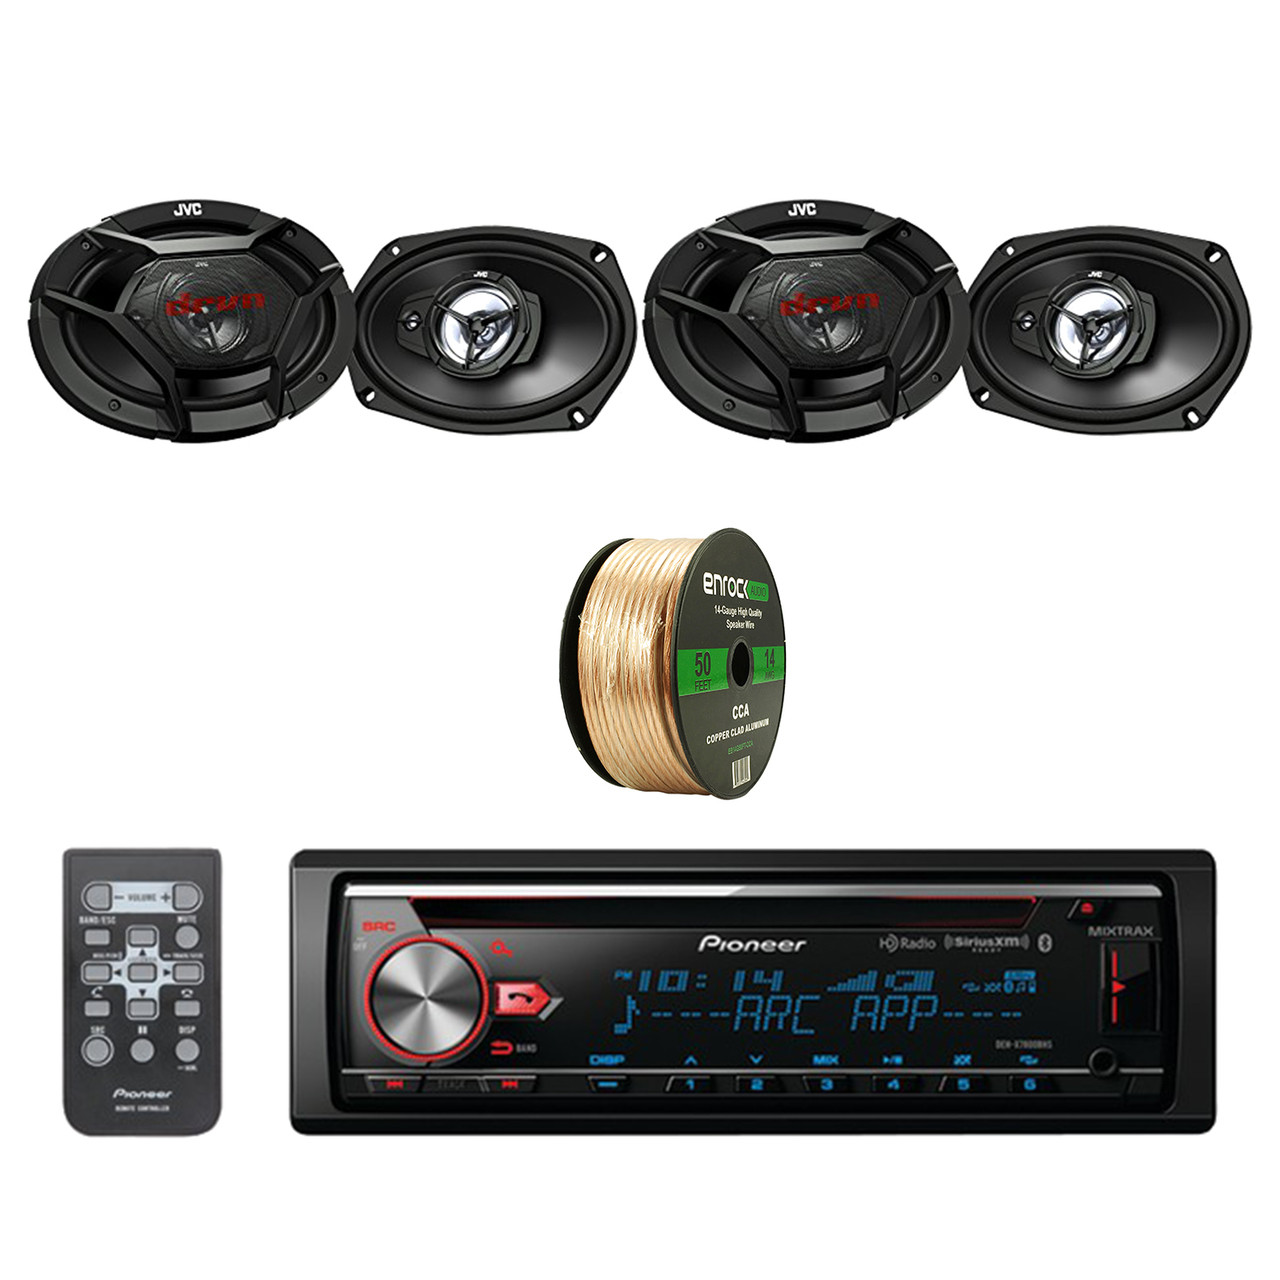 500 Watt Pioneer Cd Bluetooth Receiver W Enhanced Audio Functions With Jvc 500 Watt Peak 6 9 Inch 3 Way Factory Upgrade Coaxial Speakers 2 Pairs Enrock Audio